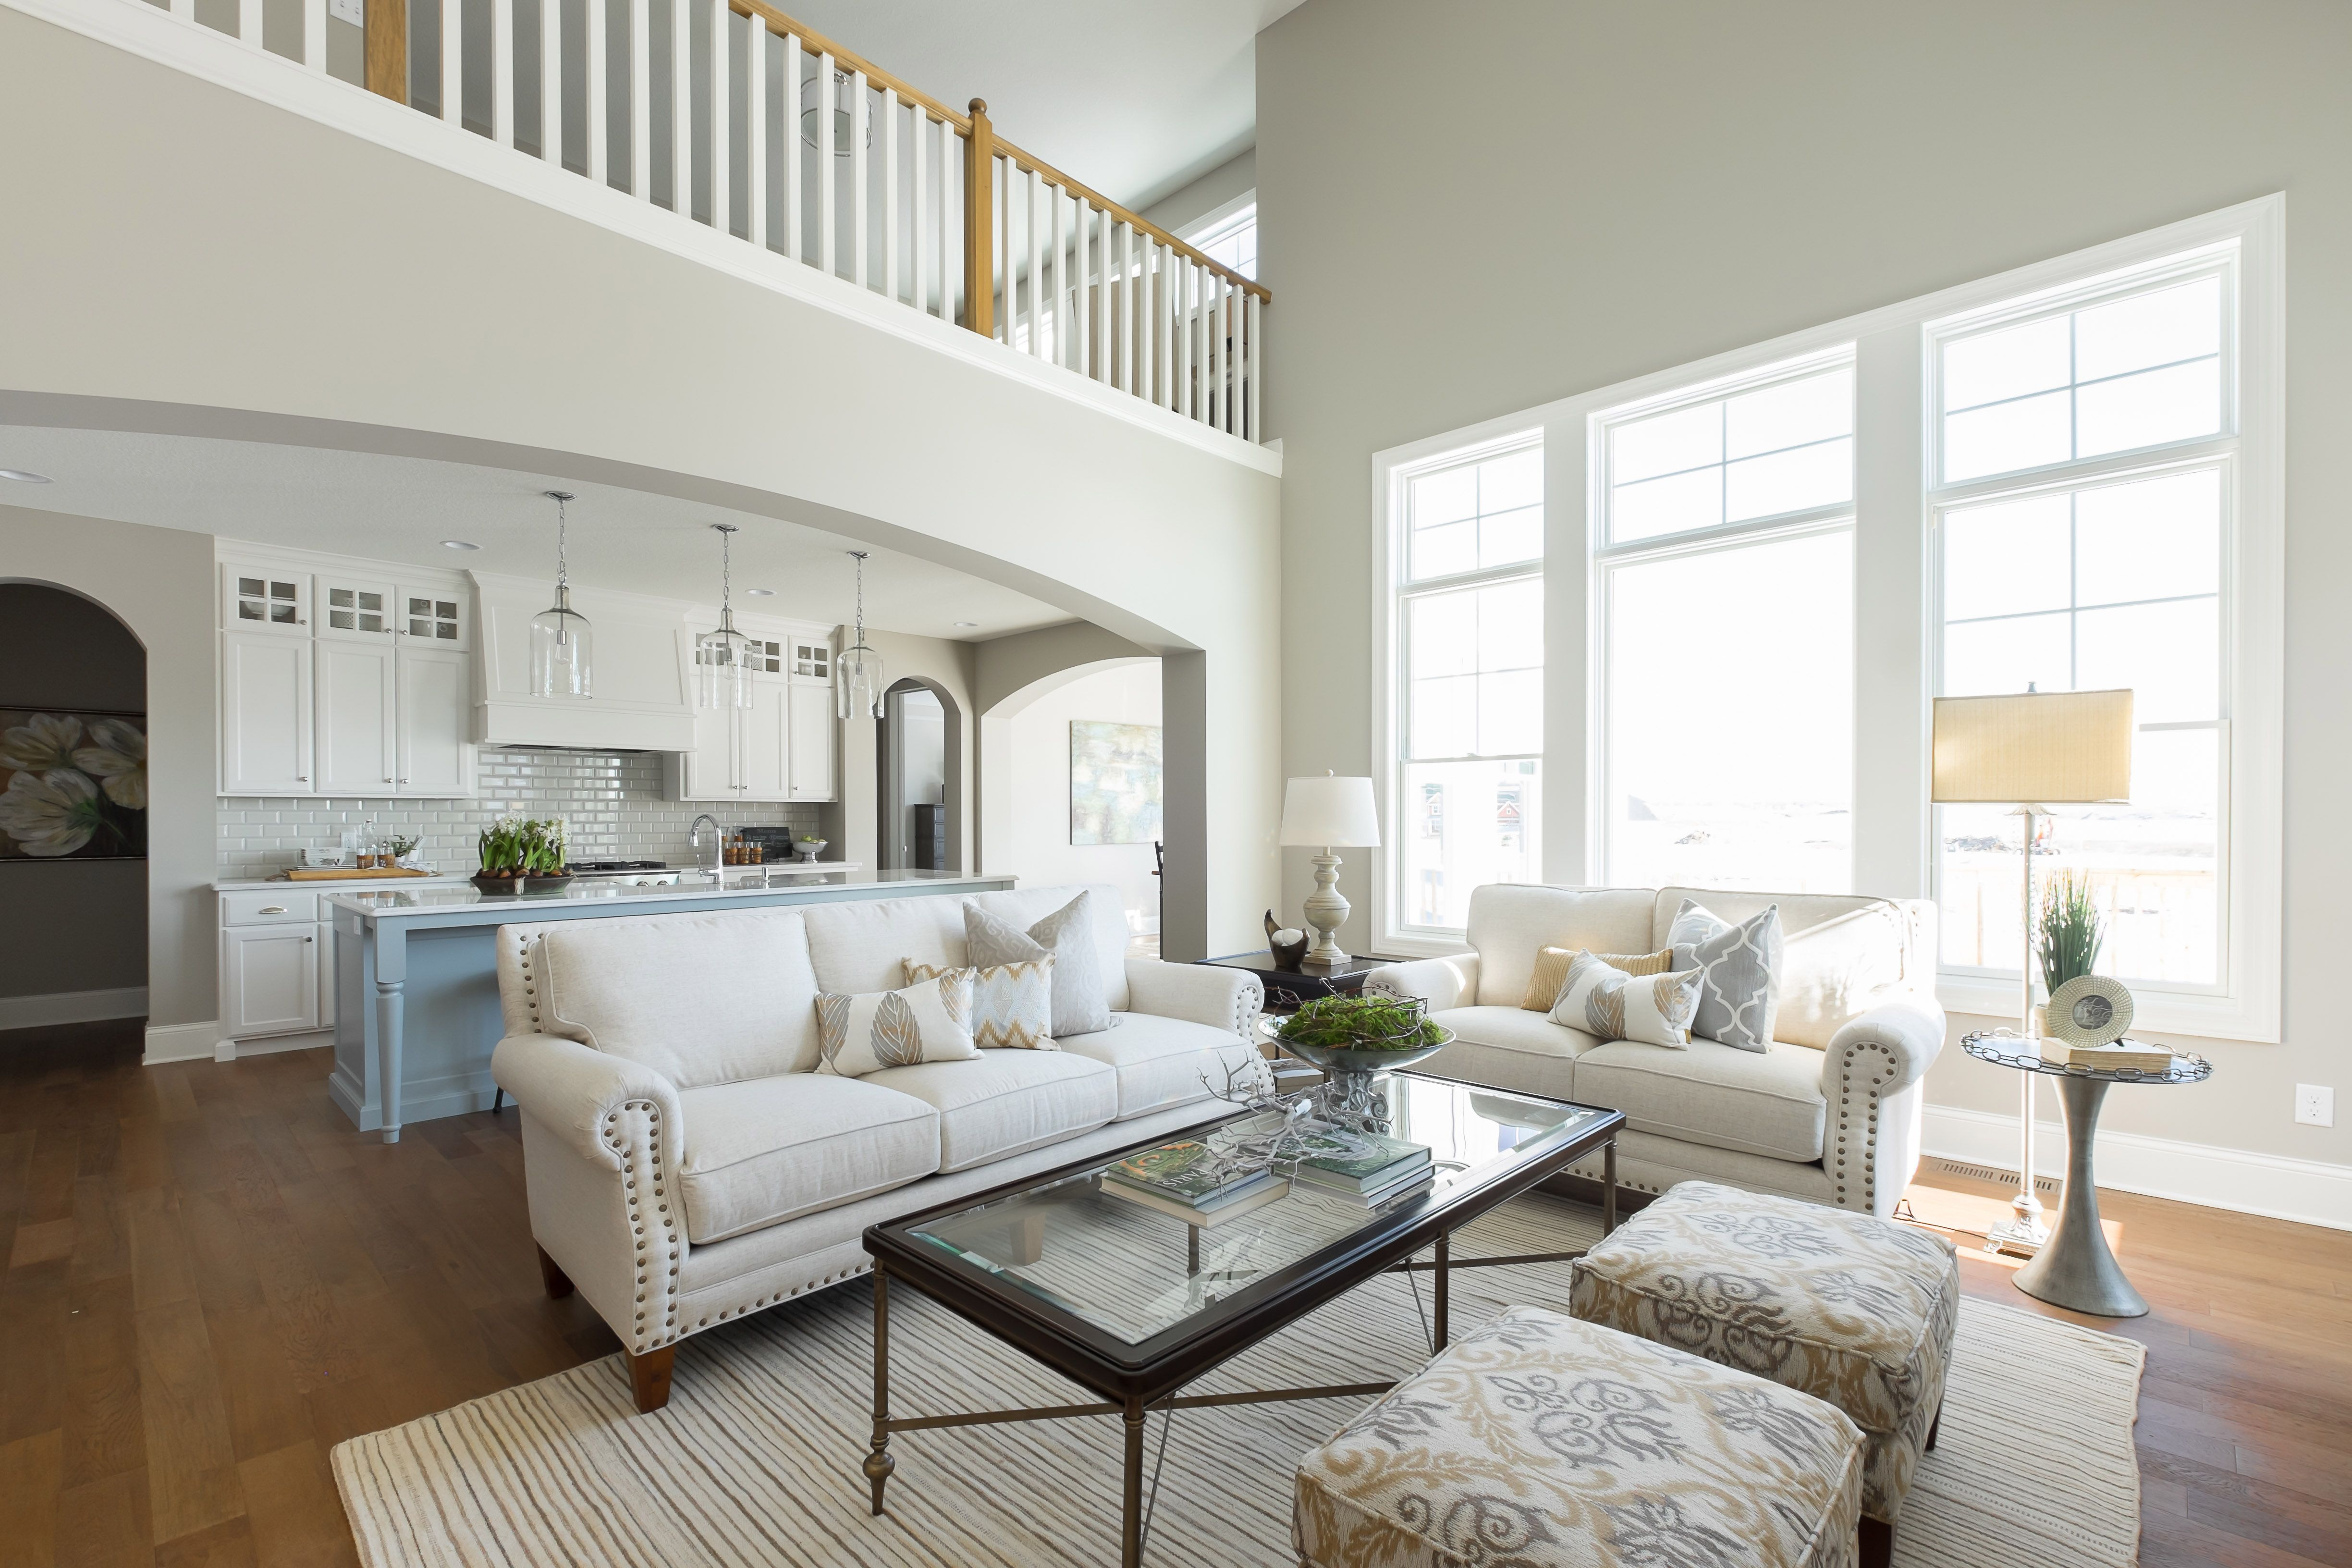 Open floor plan with 2-story vaulted Great Room opening up to ...